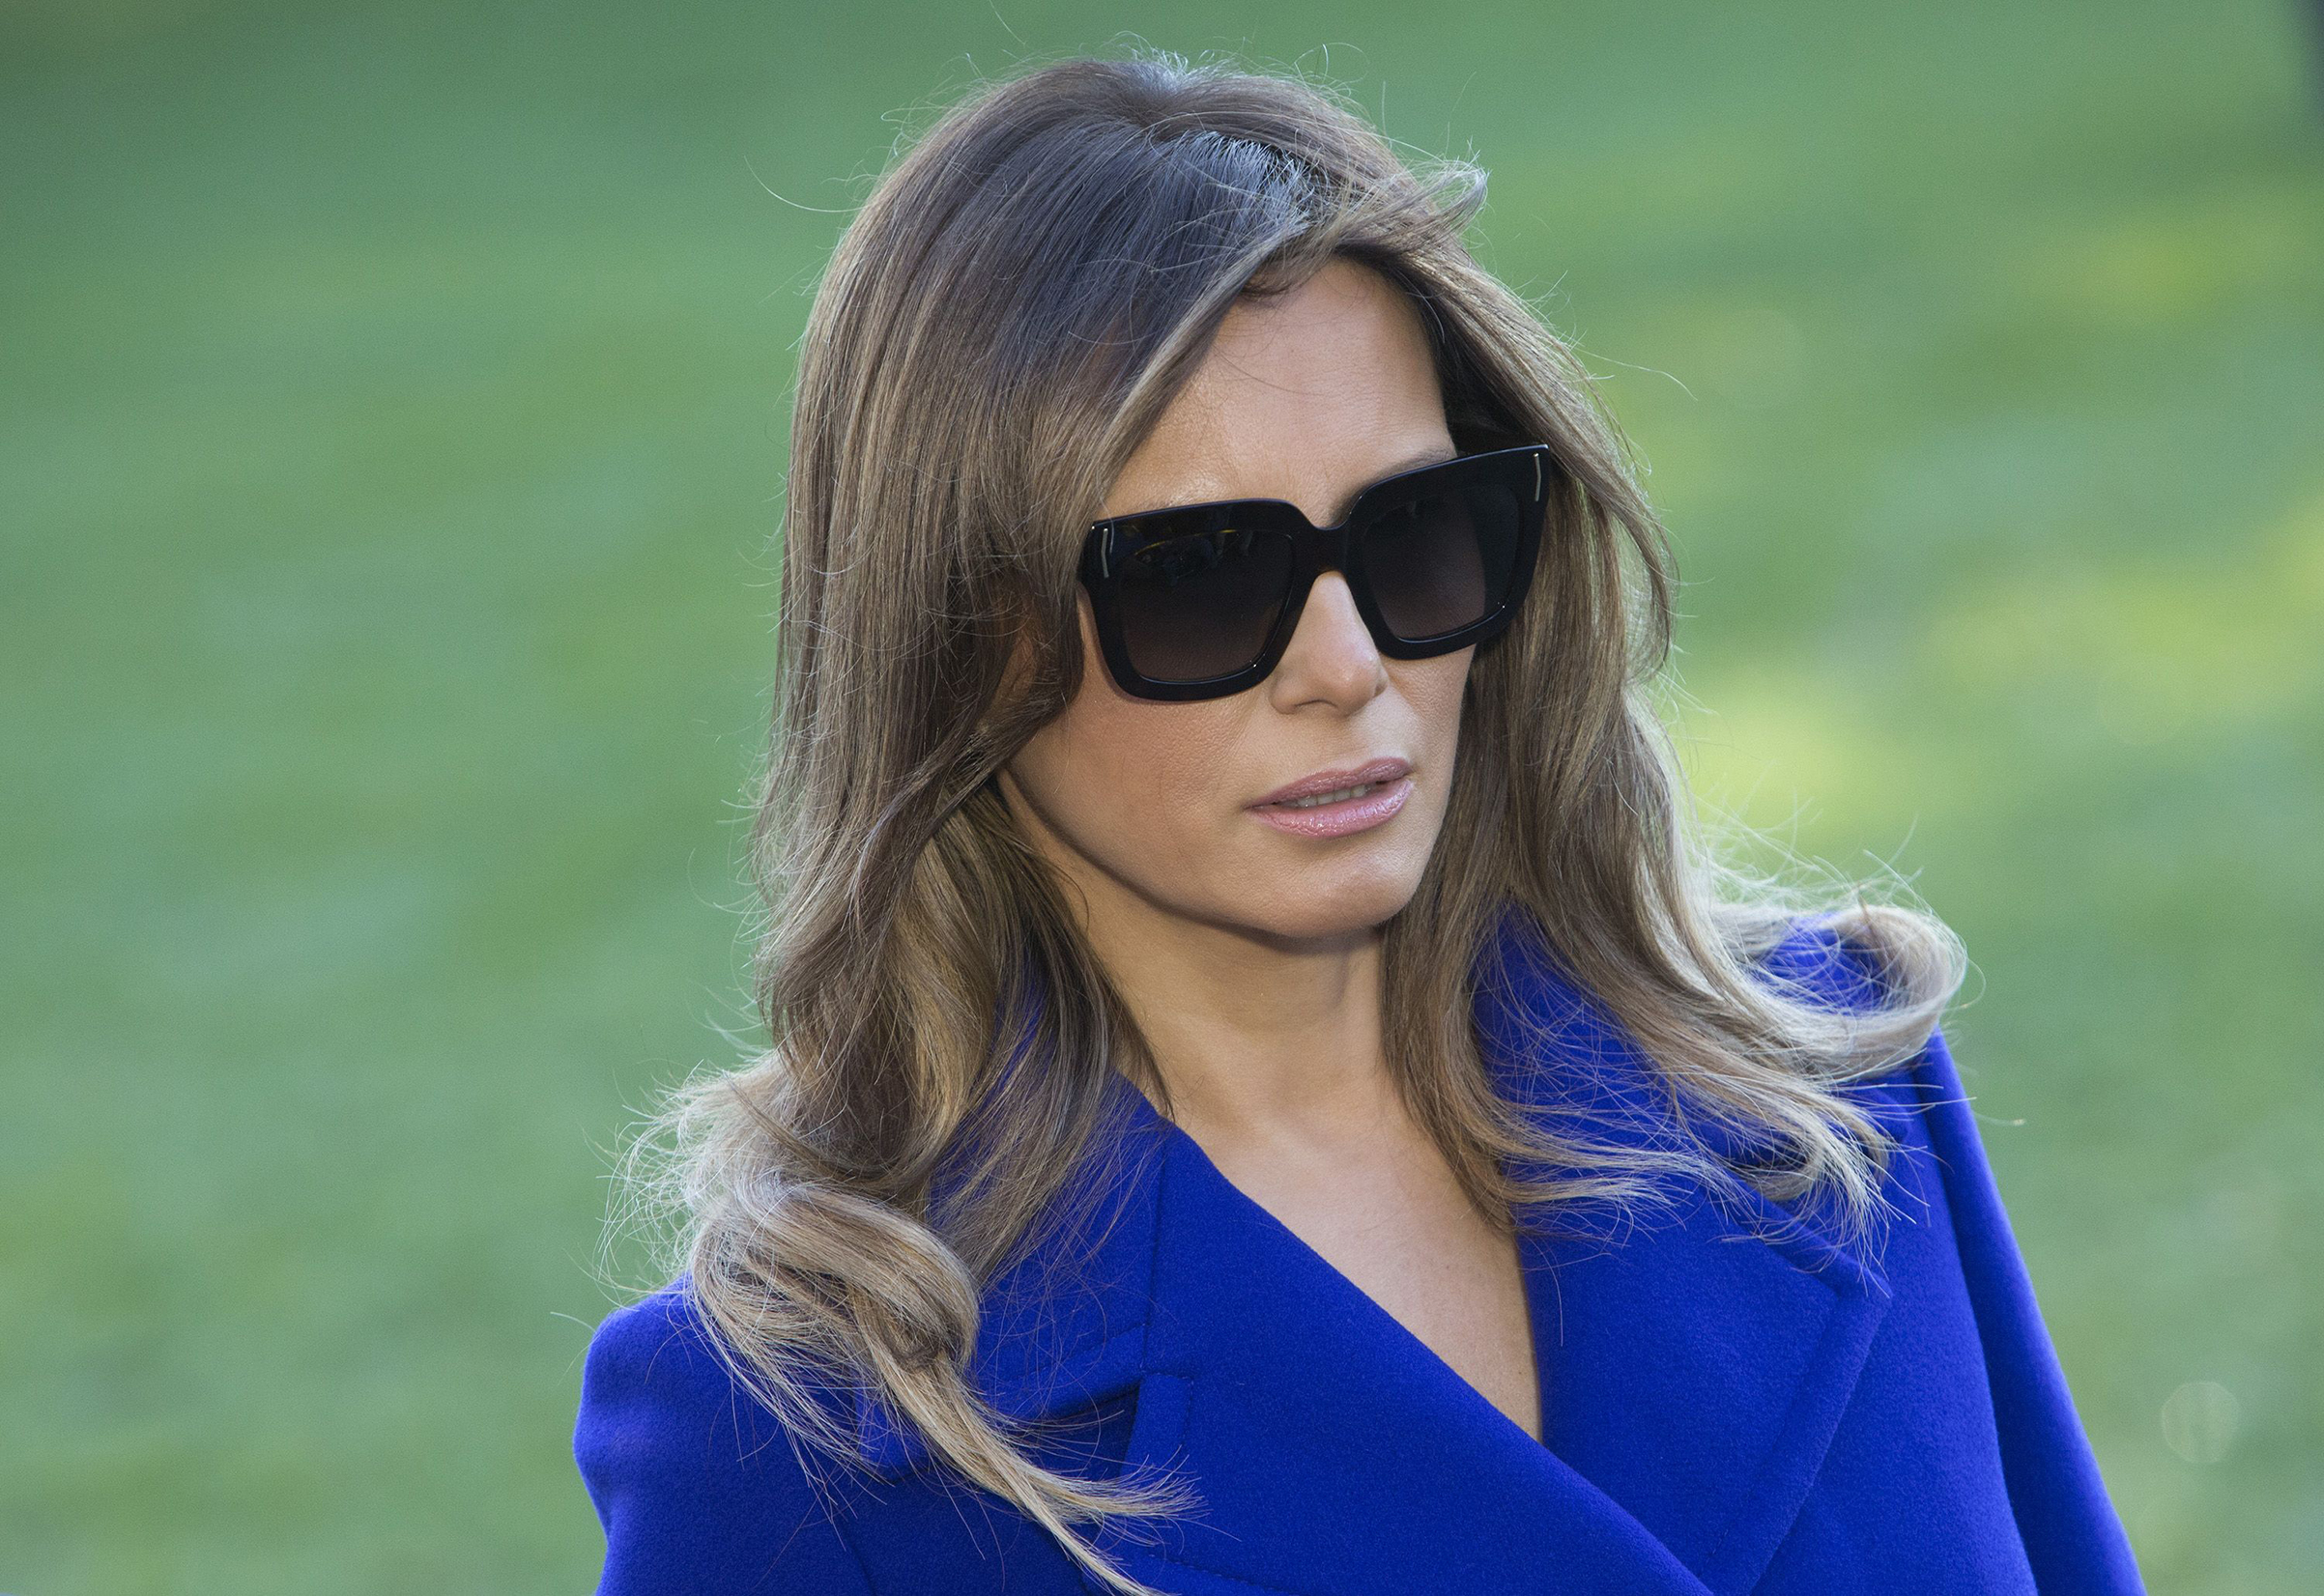 First lady Melania Trump listens as United States President Donald J. Trump speaks to the media before departing the White House in Washington, on Nov. 3, 2017.